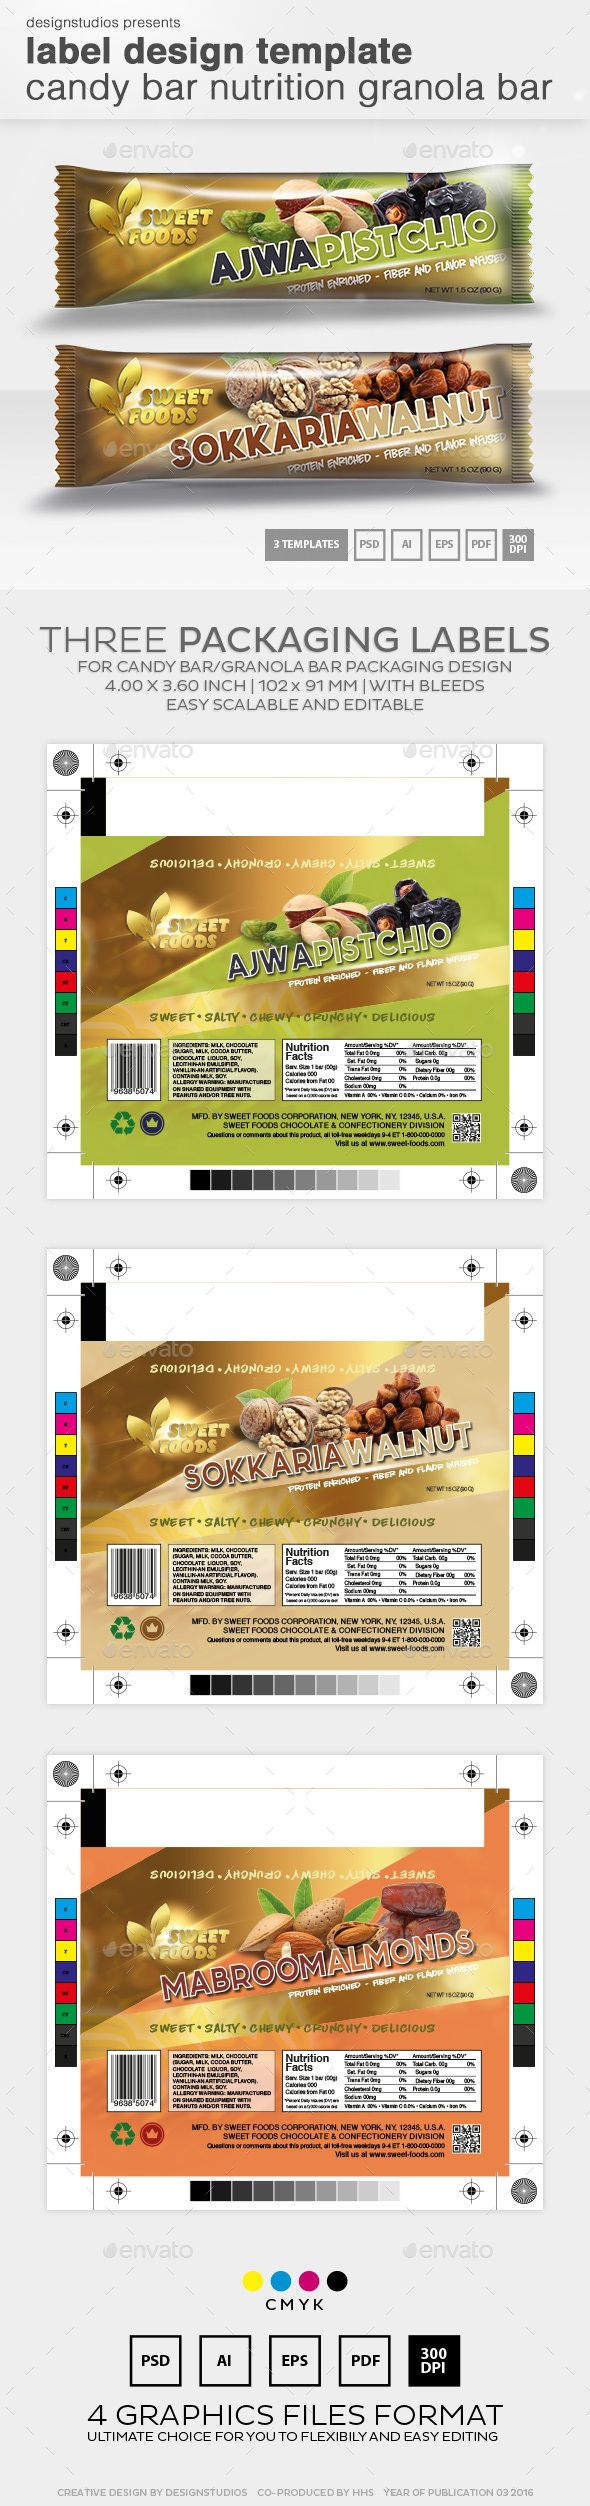 Label Design Template Candy Bar Nutrition Granola Bar  Packaging